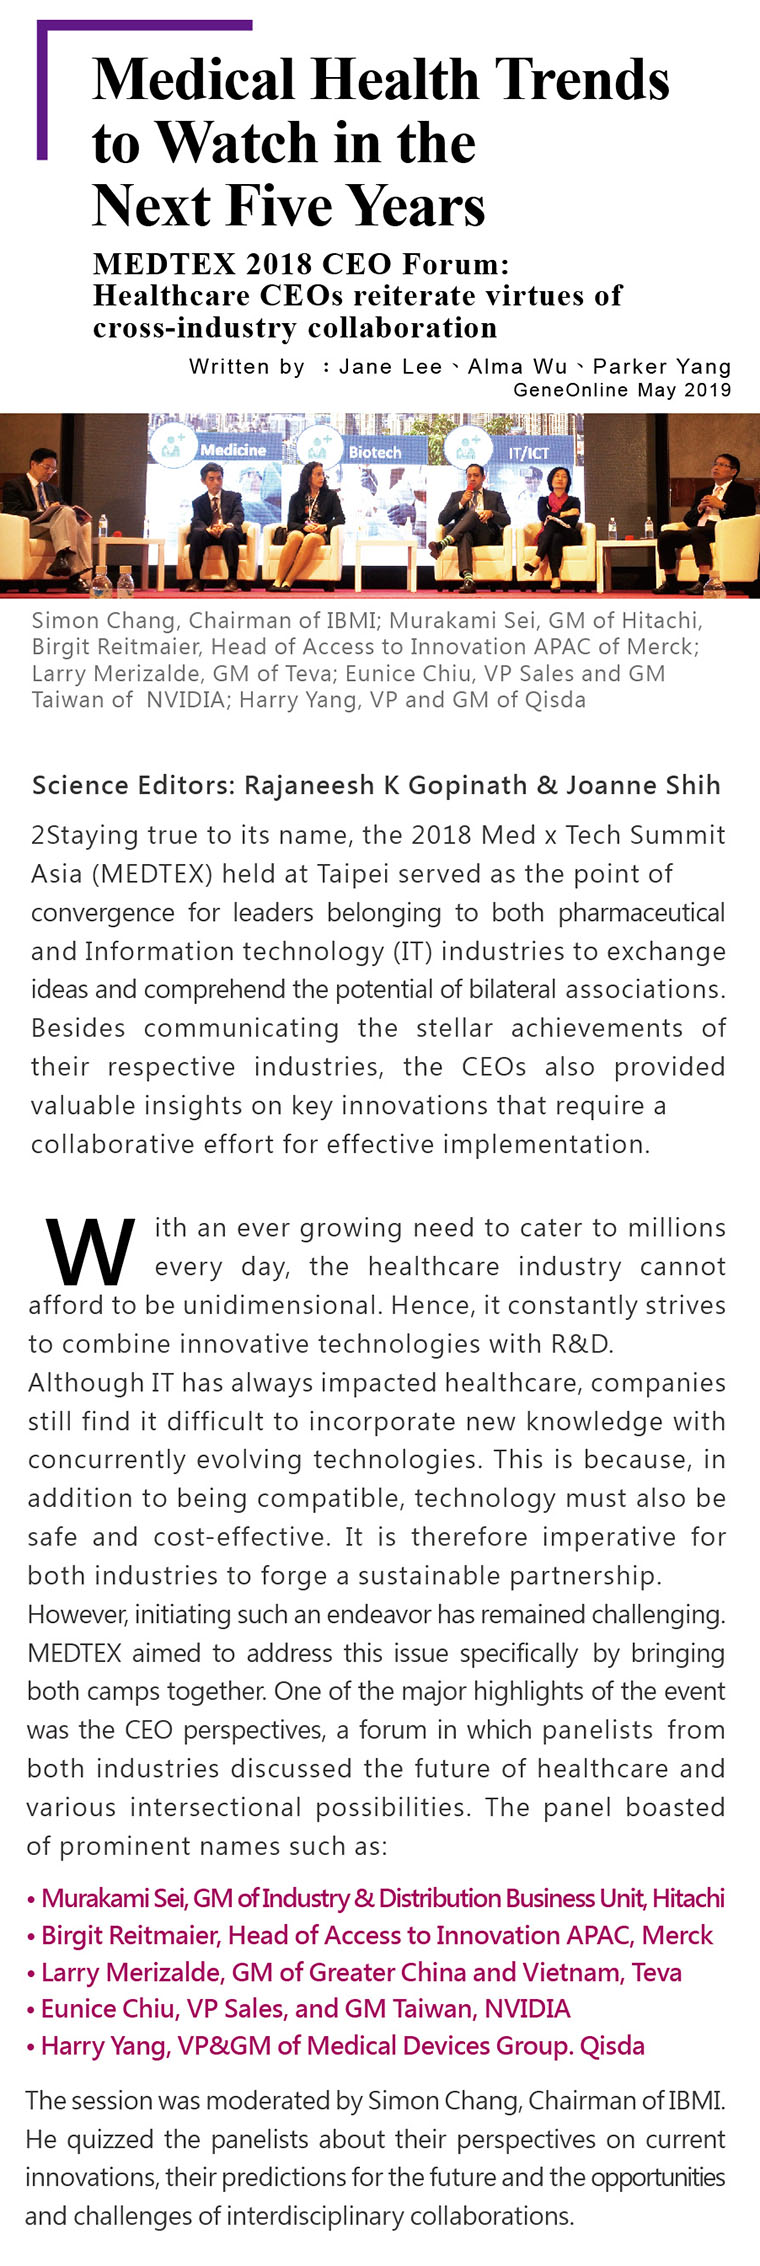 Medical Health Trends to Watch in the Next Five Years. MEDTEX 2018 CEO Forum: Healthcare CEOs reiterate virtues of cross-industry collaboration.Science Editors: Rajaneesh K Gopinath & Joanne Shih.Staying true to its name, the 2018 Med x Tech Summit Asia (MEDTEX) held at Taipei served as the point of convergence for leaders belonging to both pharmaceutical and Information technology (IT) industries to exchange ideas and comprehend the potential of bilateral associations. Besides communicating the stellar achievements of their respective industries, the CEOs also provided valuable insights on key innovations that require a collaborative effort for effective implementation. With an ever growing need to cater to millions every day, the healthcare industry cannot afford to be unidimensional. Hence, it constantly strives to combine innovative technologies with R&D. Although IT has always impacted healthcare, companies still find it difficult to incorporate new knowledge with concurrently evolving technologies. This is because, in addition to being compatible, technology must also be safe and cost-effective. It is therefore imperative for both industries to forge a sustainable partnership. However, initiating such an endeavor has remained challenging. MEDTEX aimed to address this issue specifically by bringing both camps together. One of the major highlights of the event was the CEO perspectives, a forum in which panelists from both industries discussed the future of healthcare and various intersectional possibilities. The panel boasted of prominent names such as: